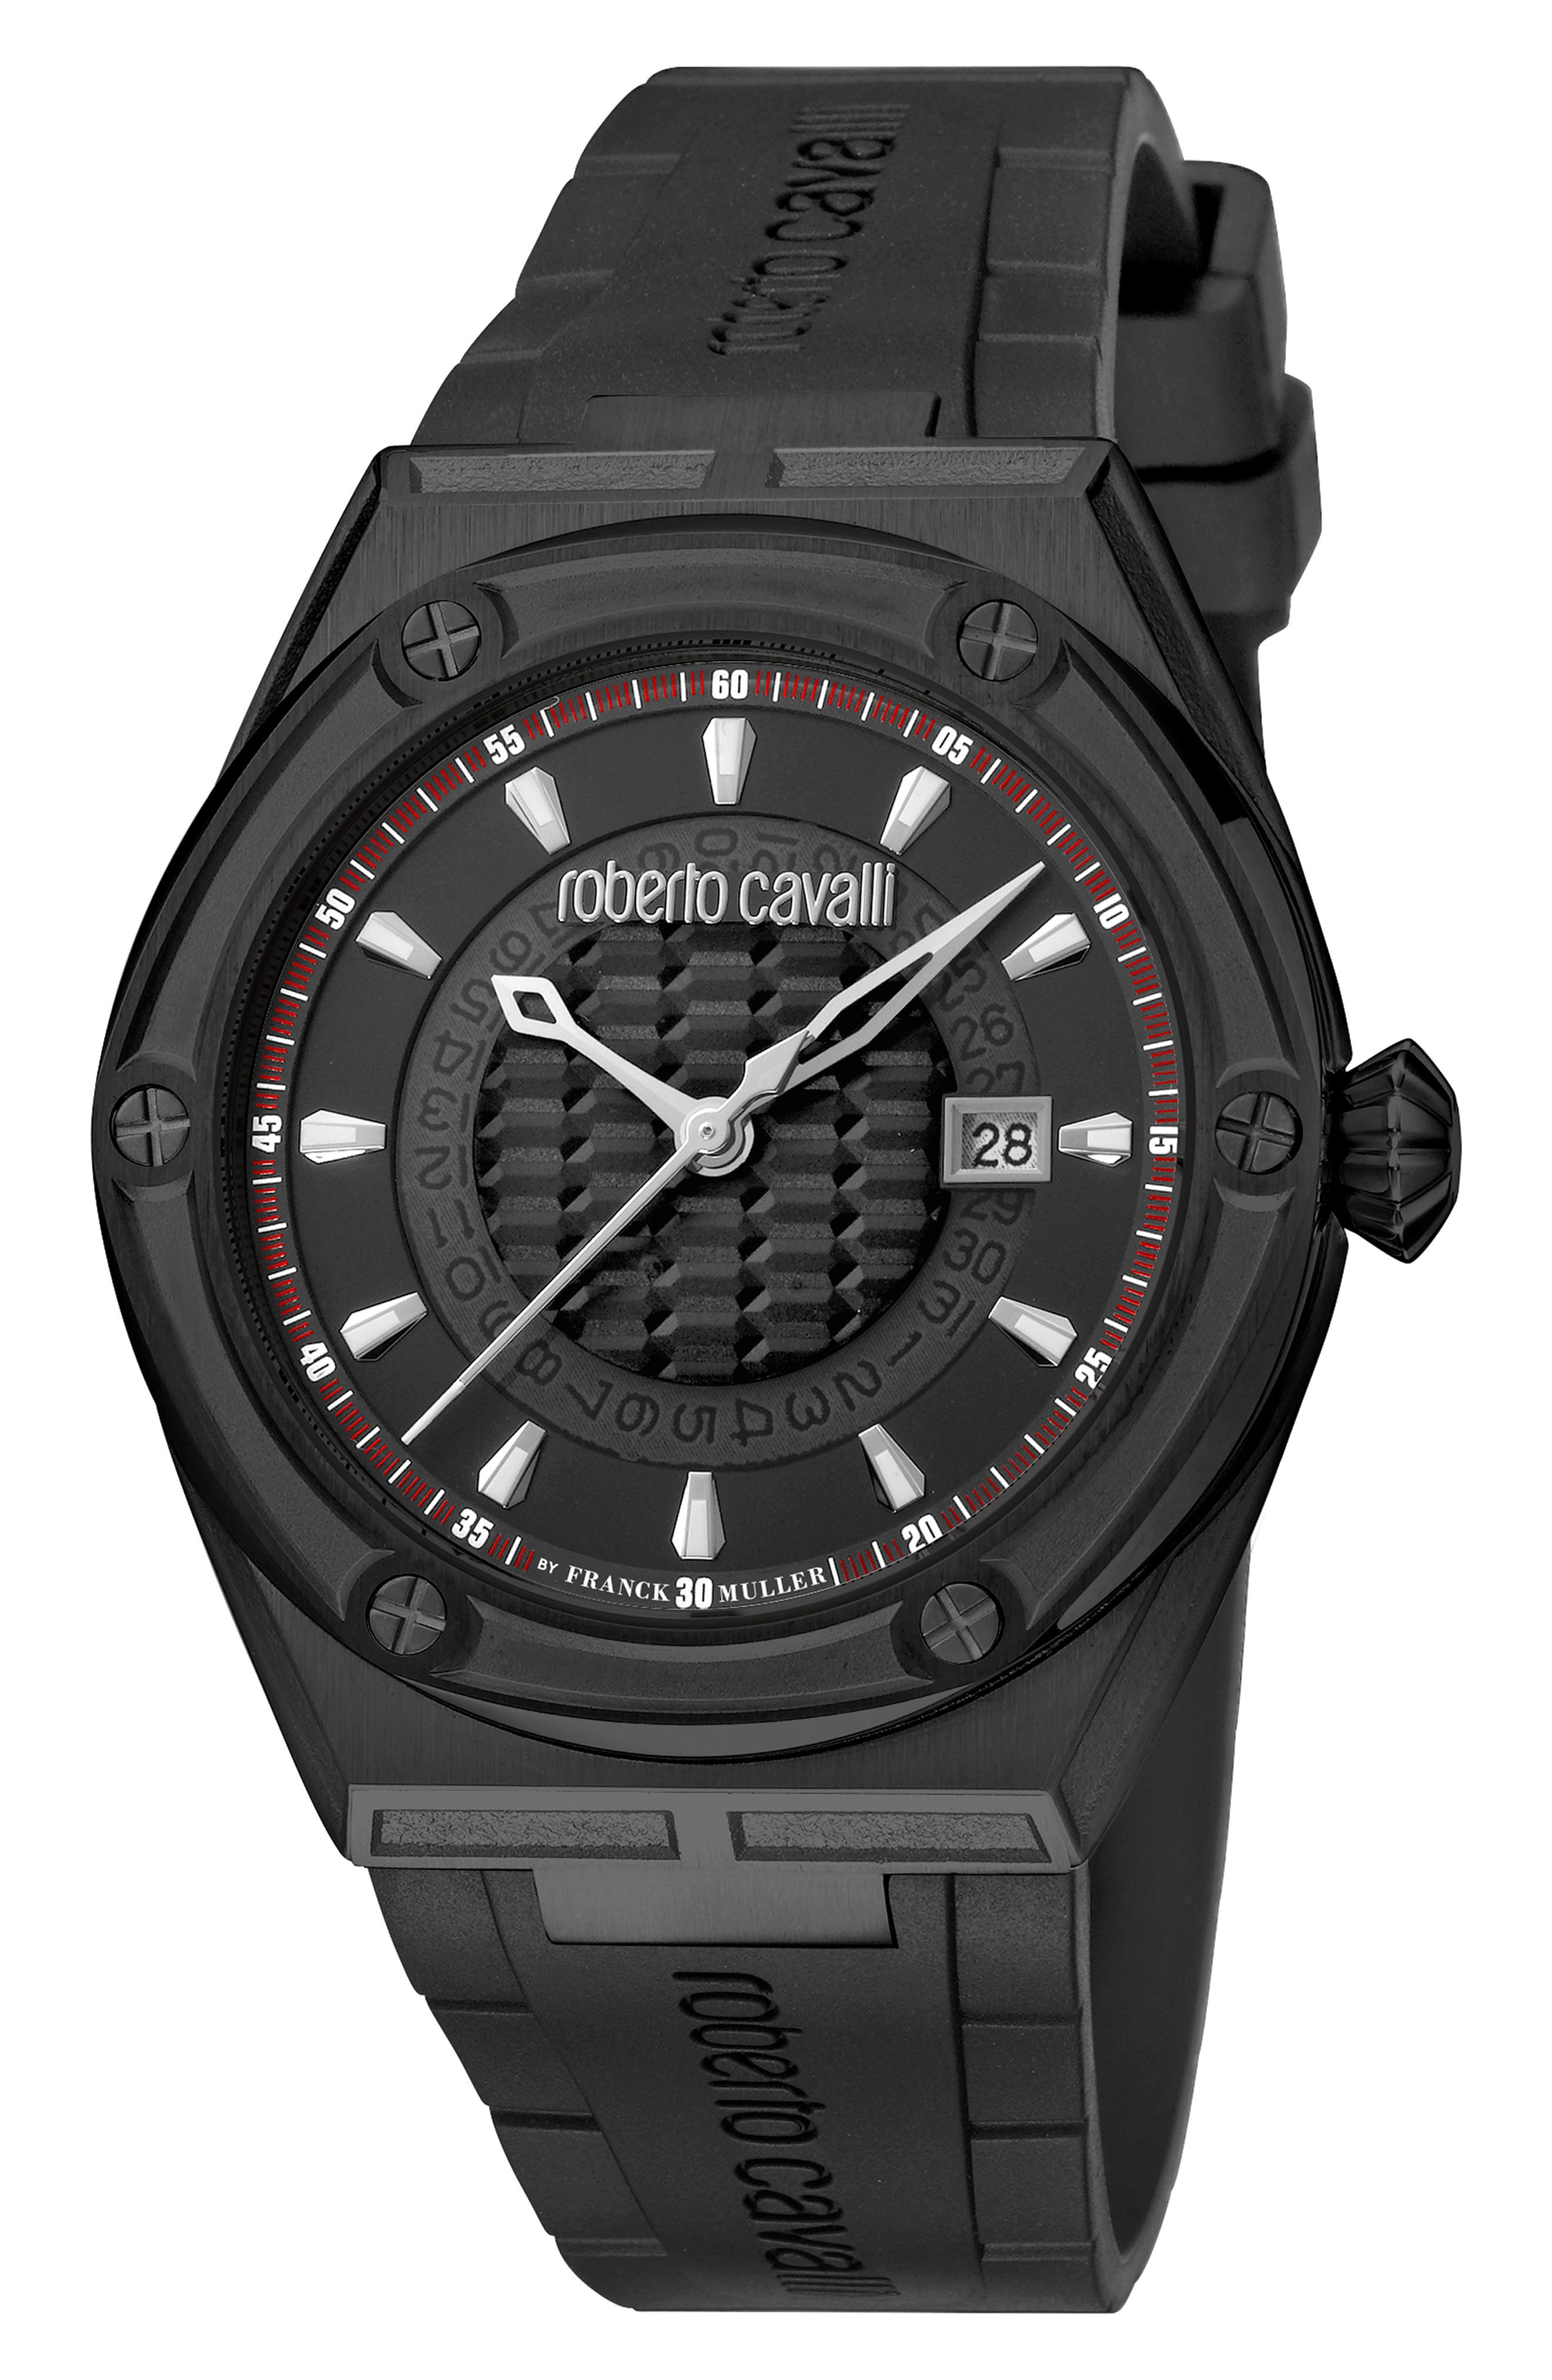 ROBERTO CAVALLI BY FRANCK MULLER Scala Automatic Rubber Strap Watch, 45Mm in Black